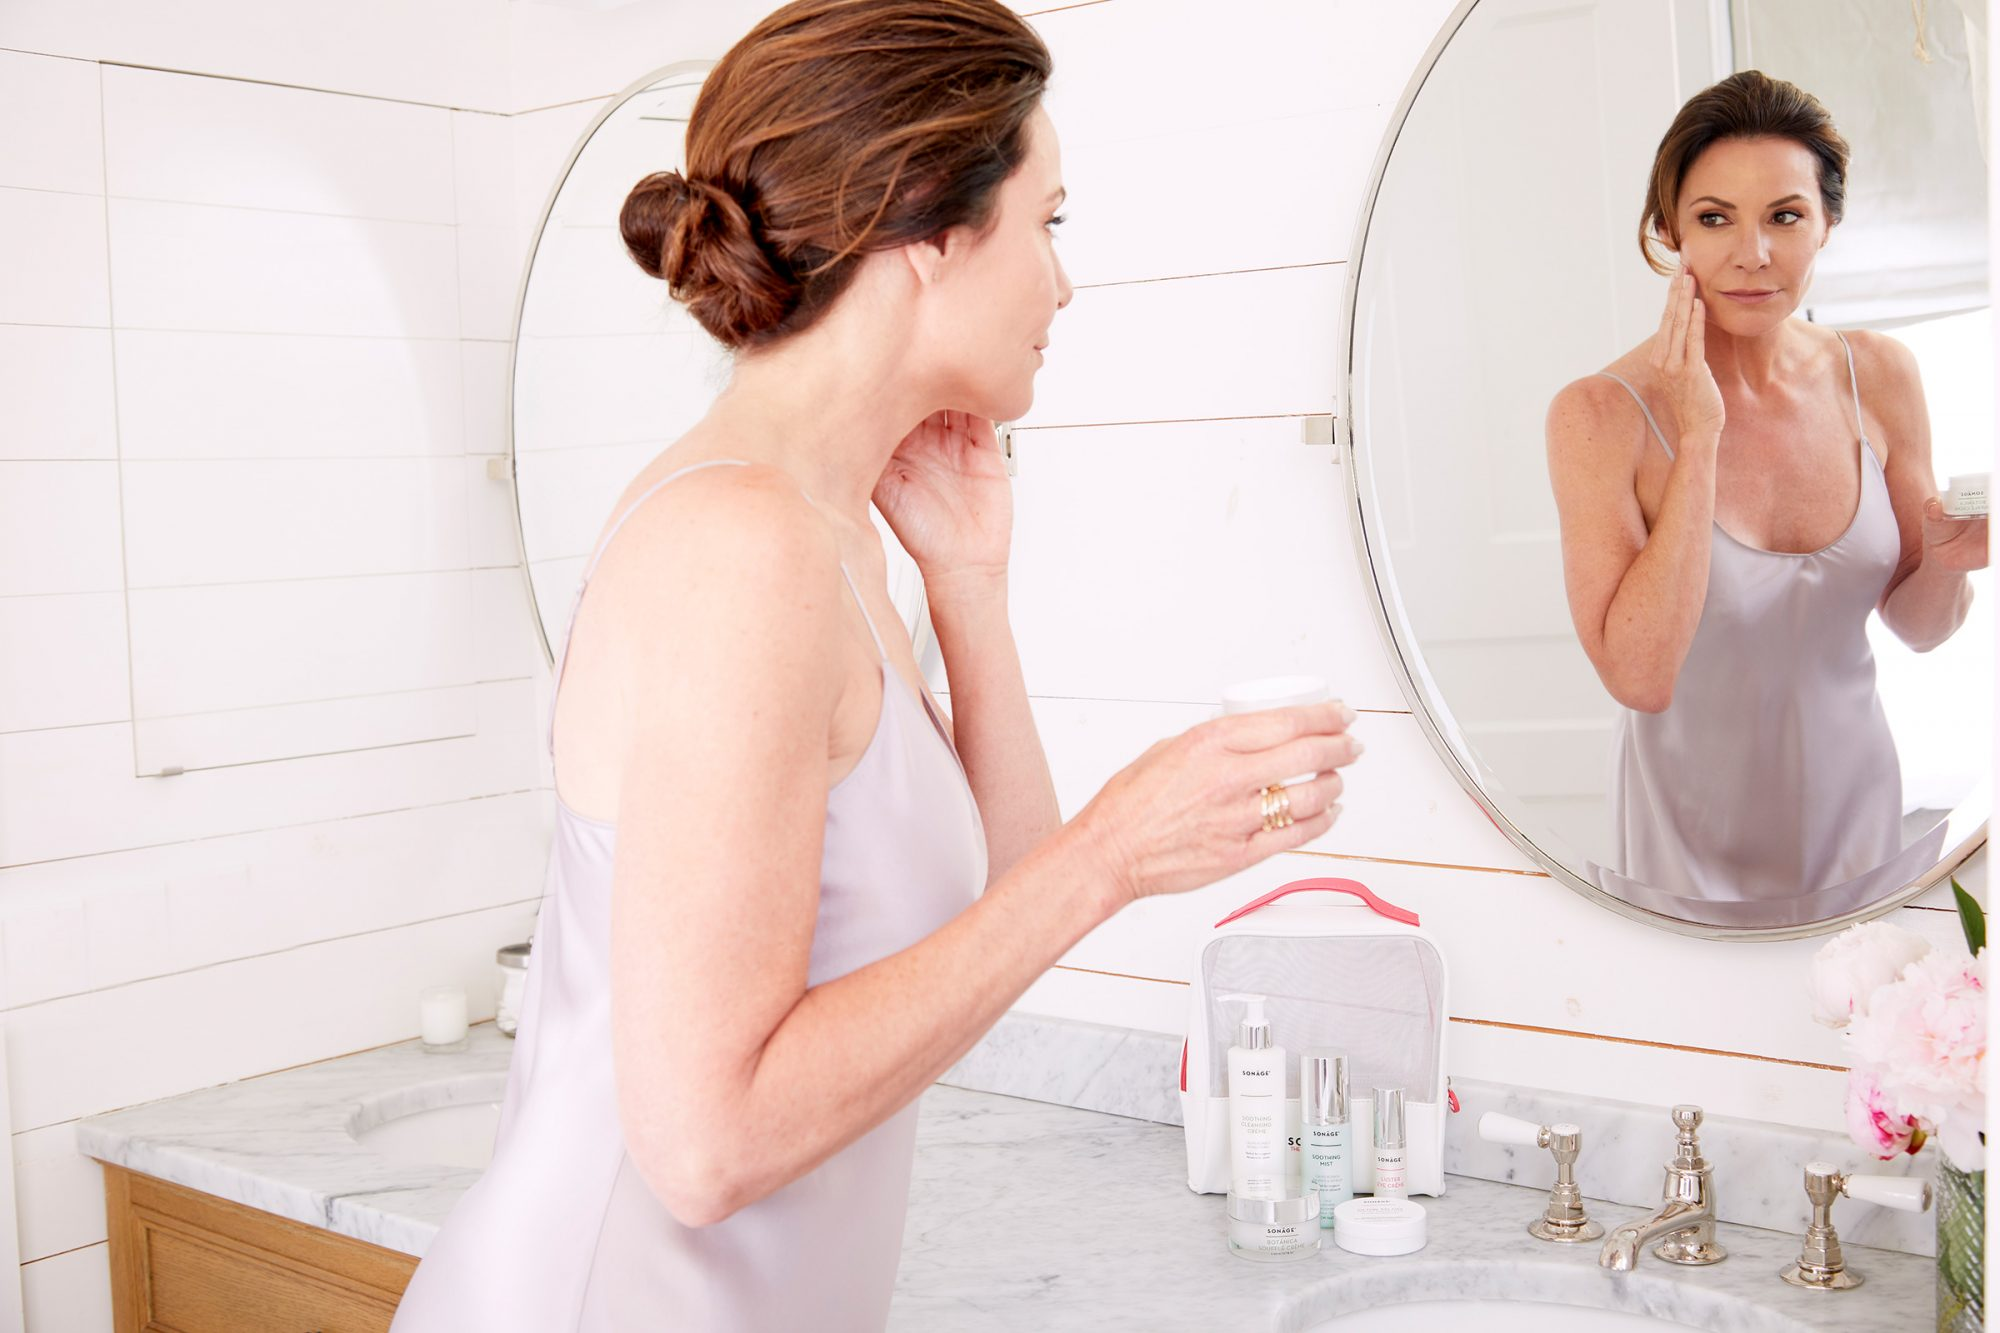 LuAnn de Lesseps curated a skincare collection and filmed a video using the products for People TV